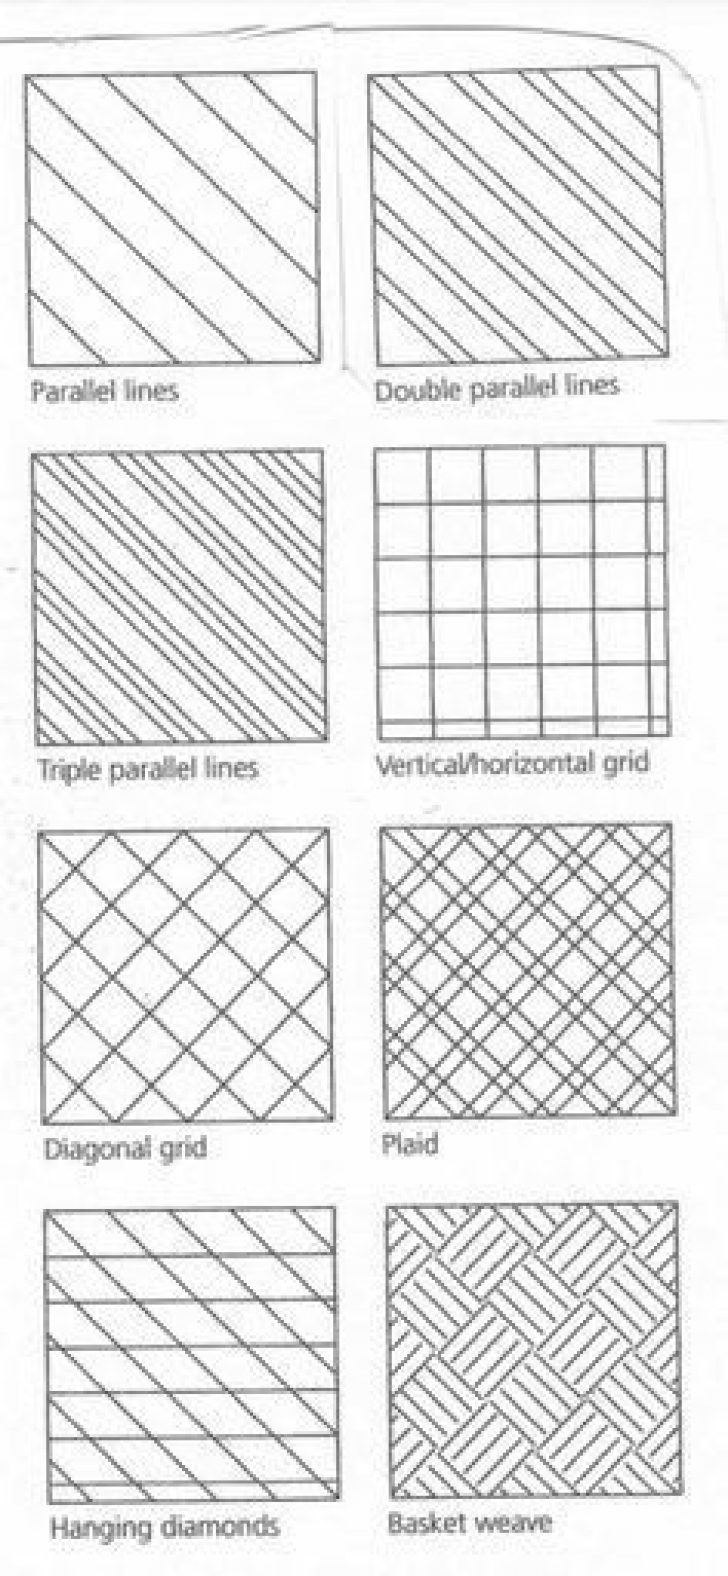 Permalink to Cozy Quilting Sewing Patterns Inspirations